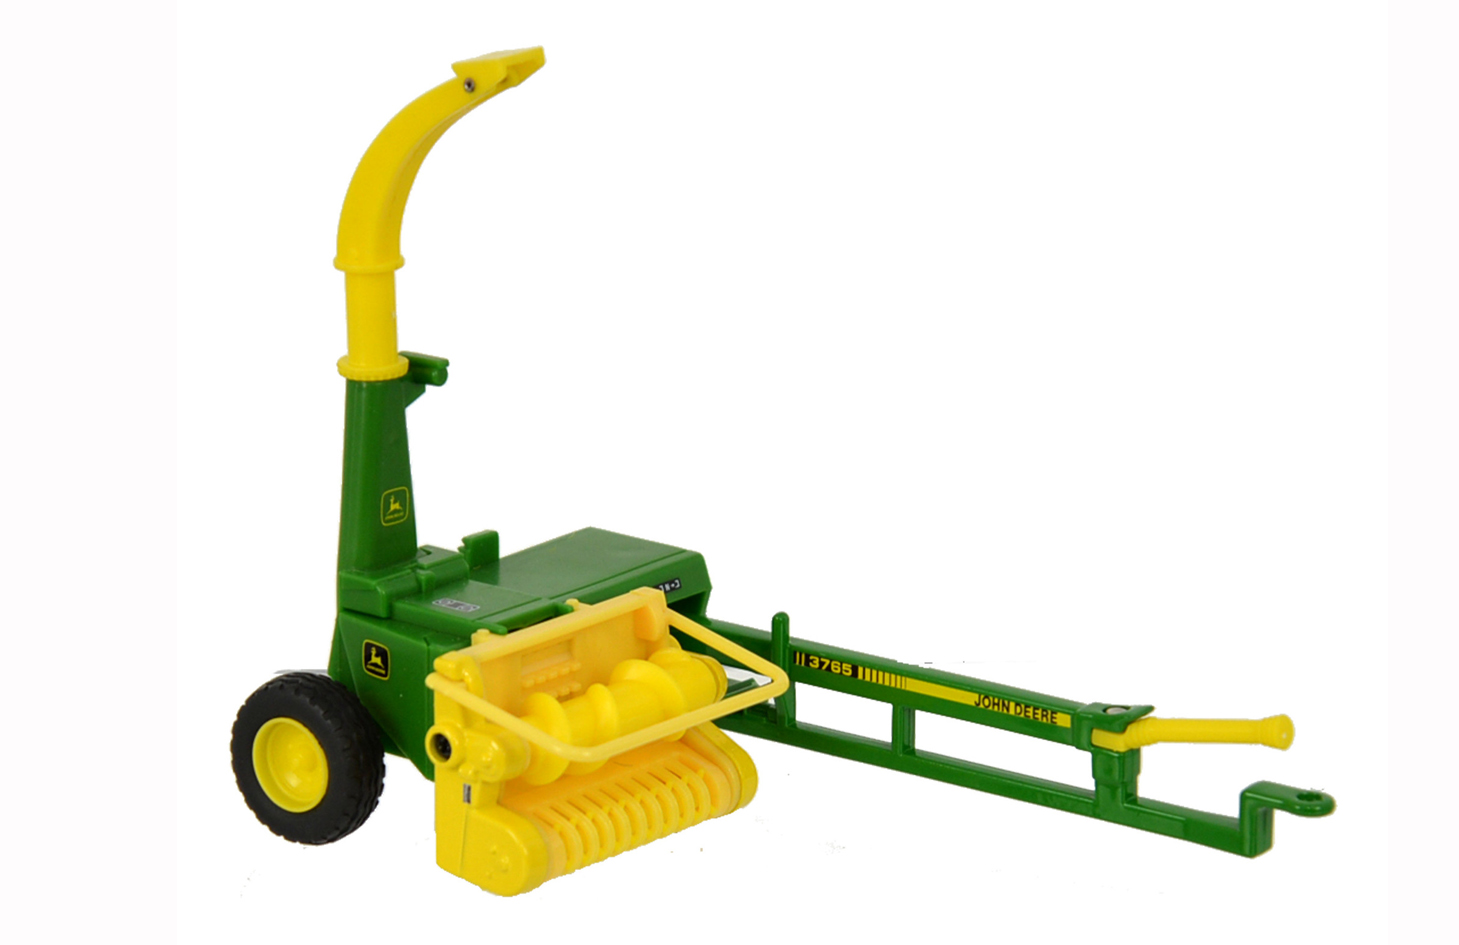 Britains 43152A1 trailed forage harvester